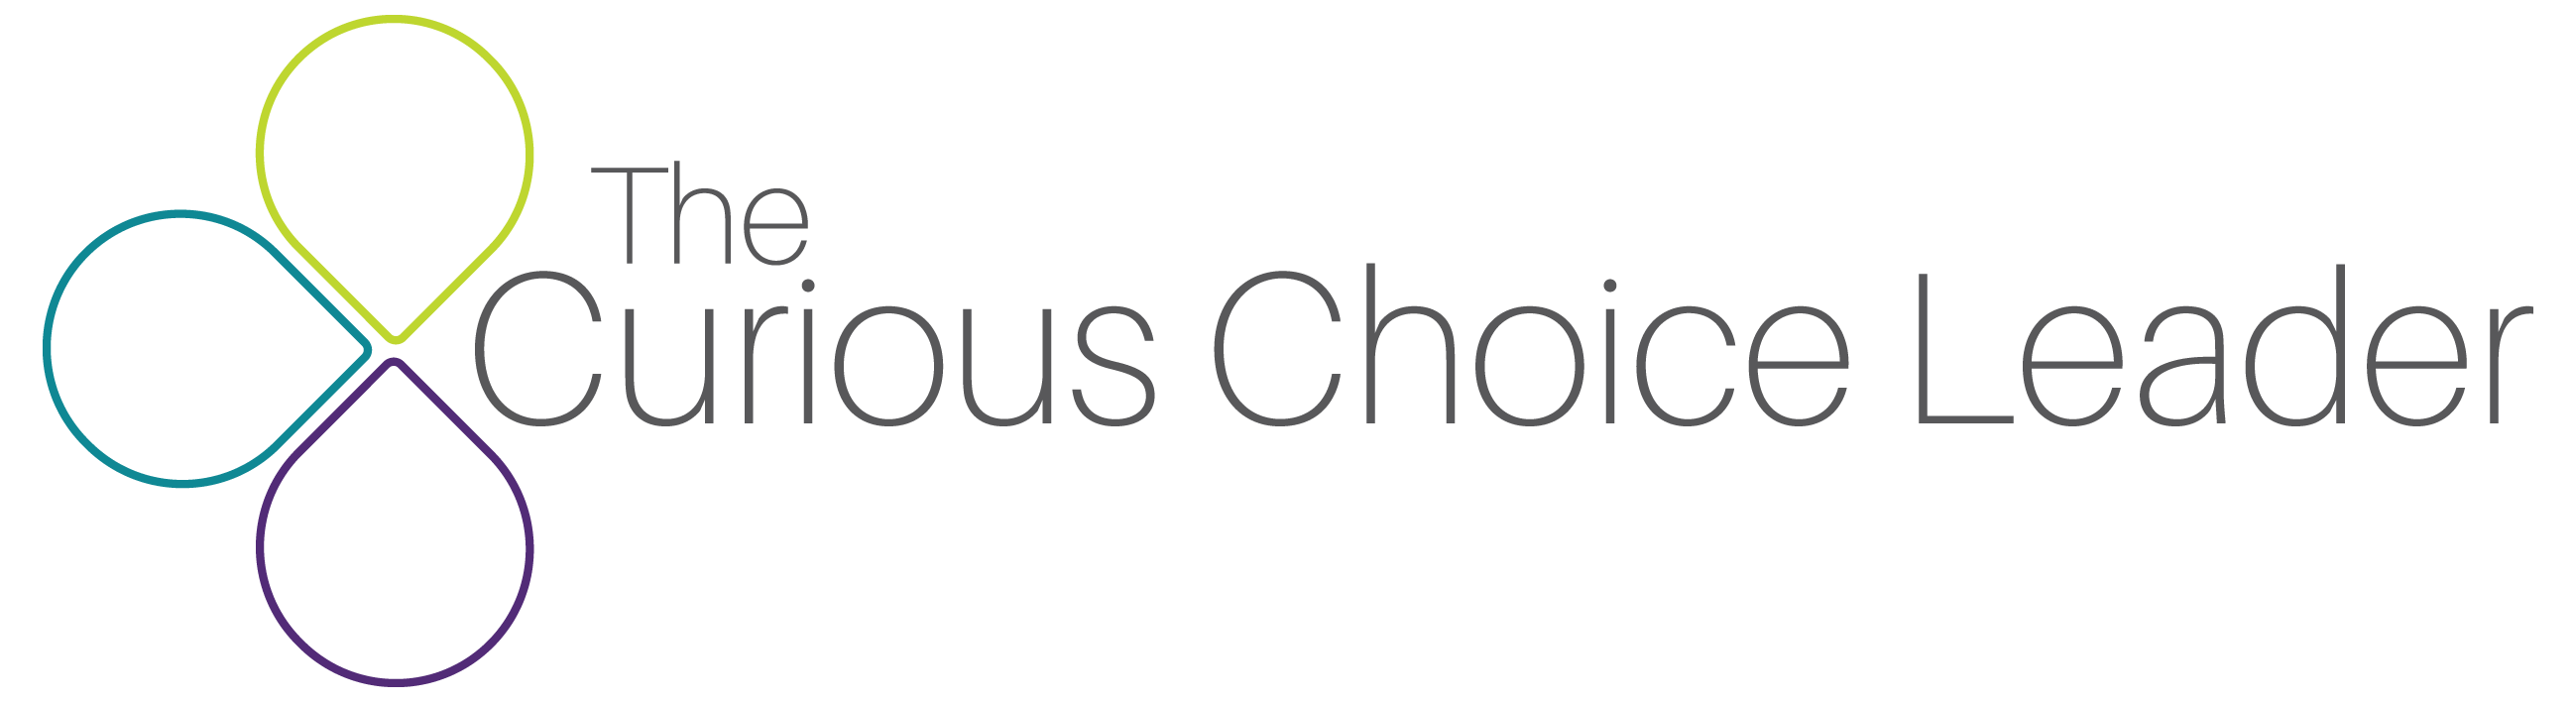 The Curious Choice Leader Logo